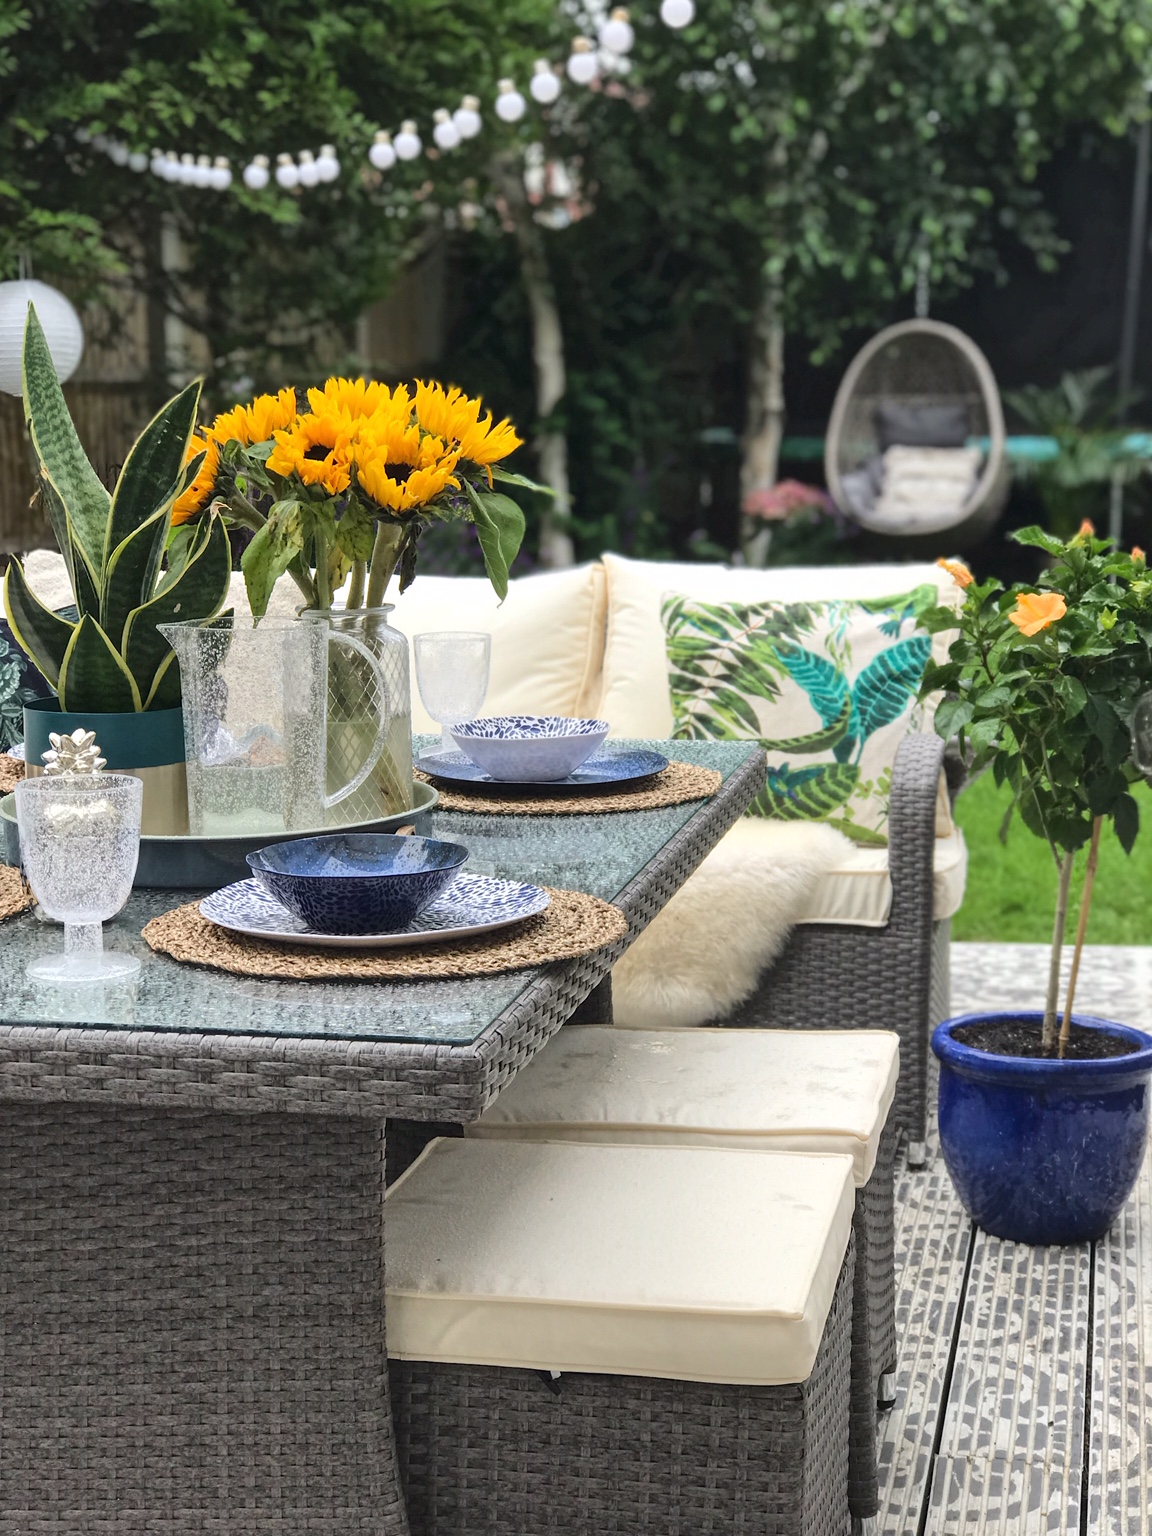 Even when it started to drizzle, the cushions were easy to wipe off and were dry very quickly